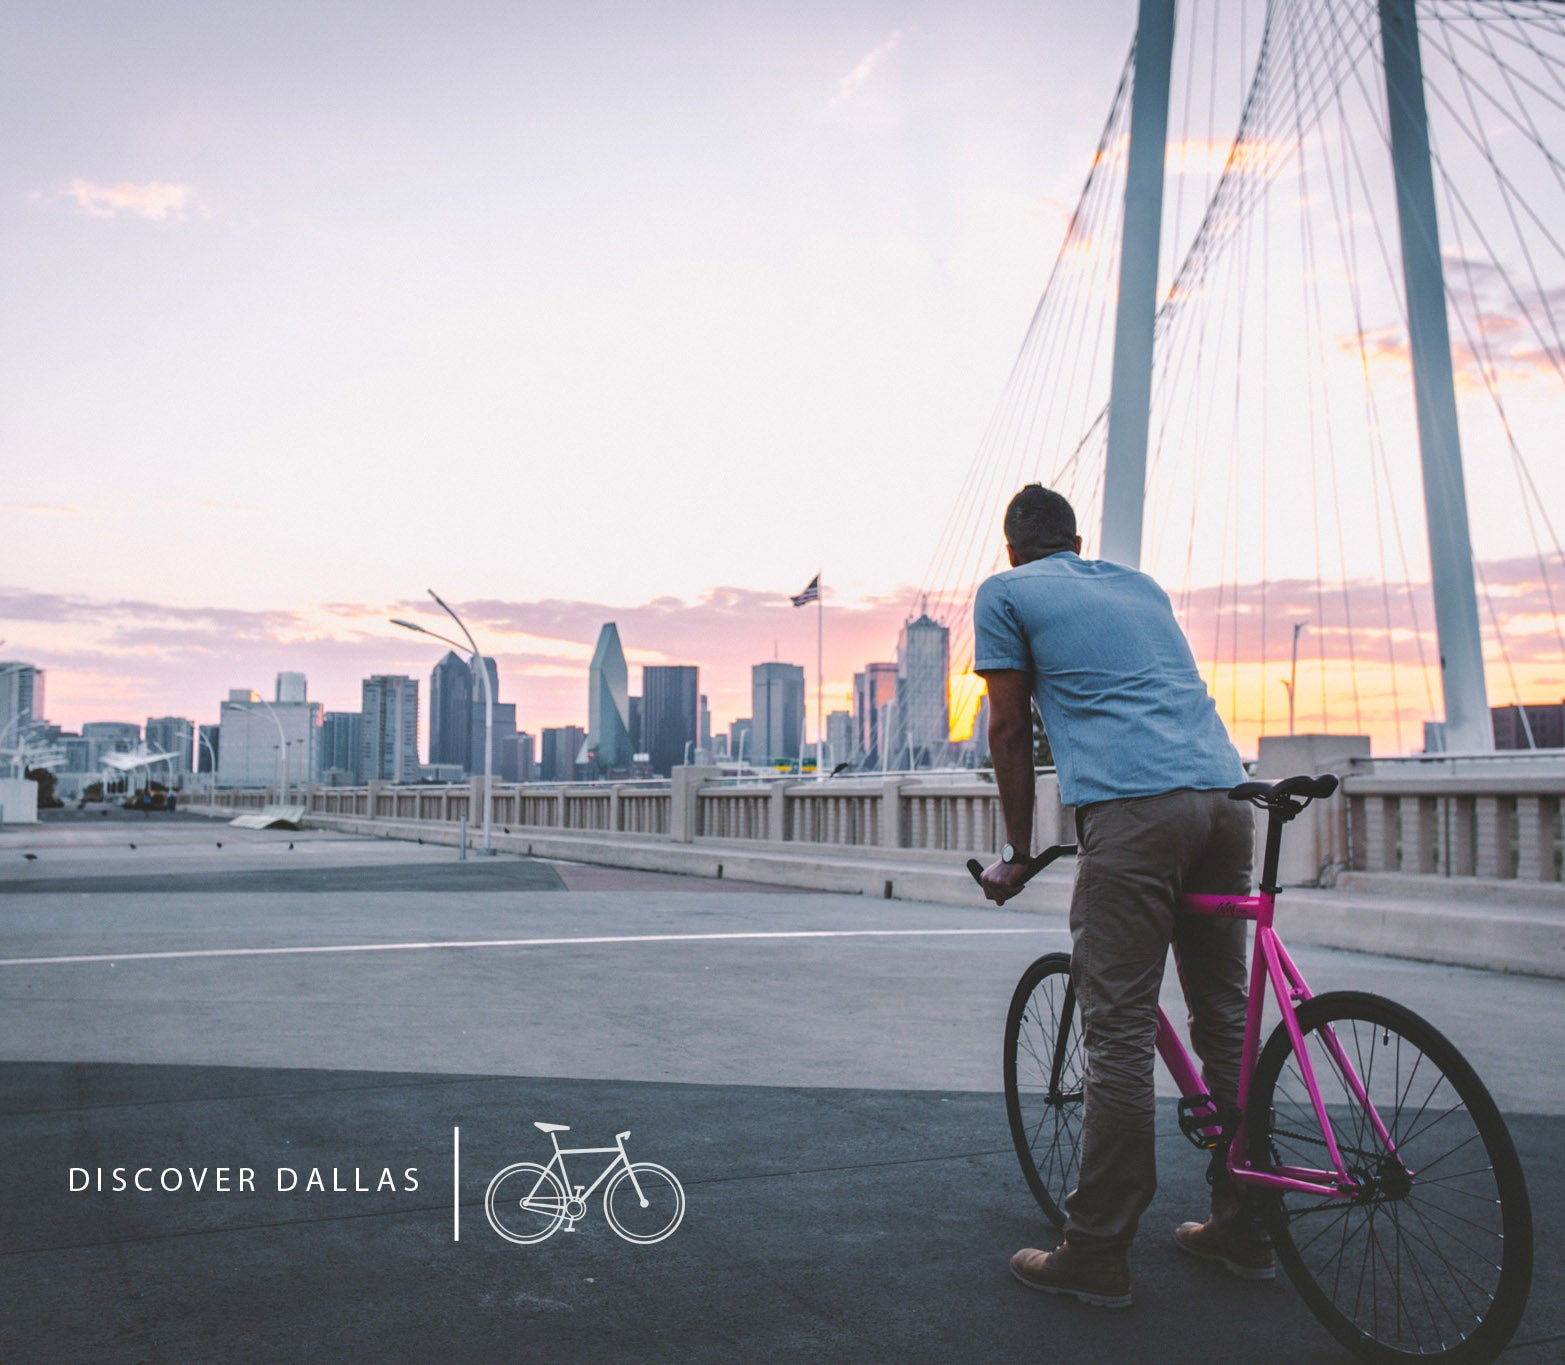 Discover Dallas Lookbook